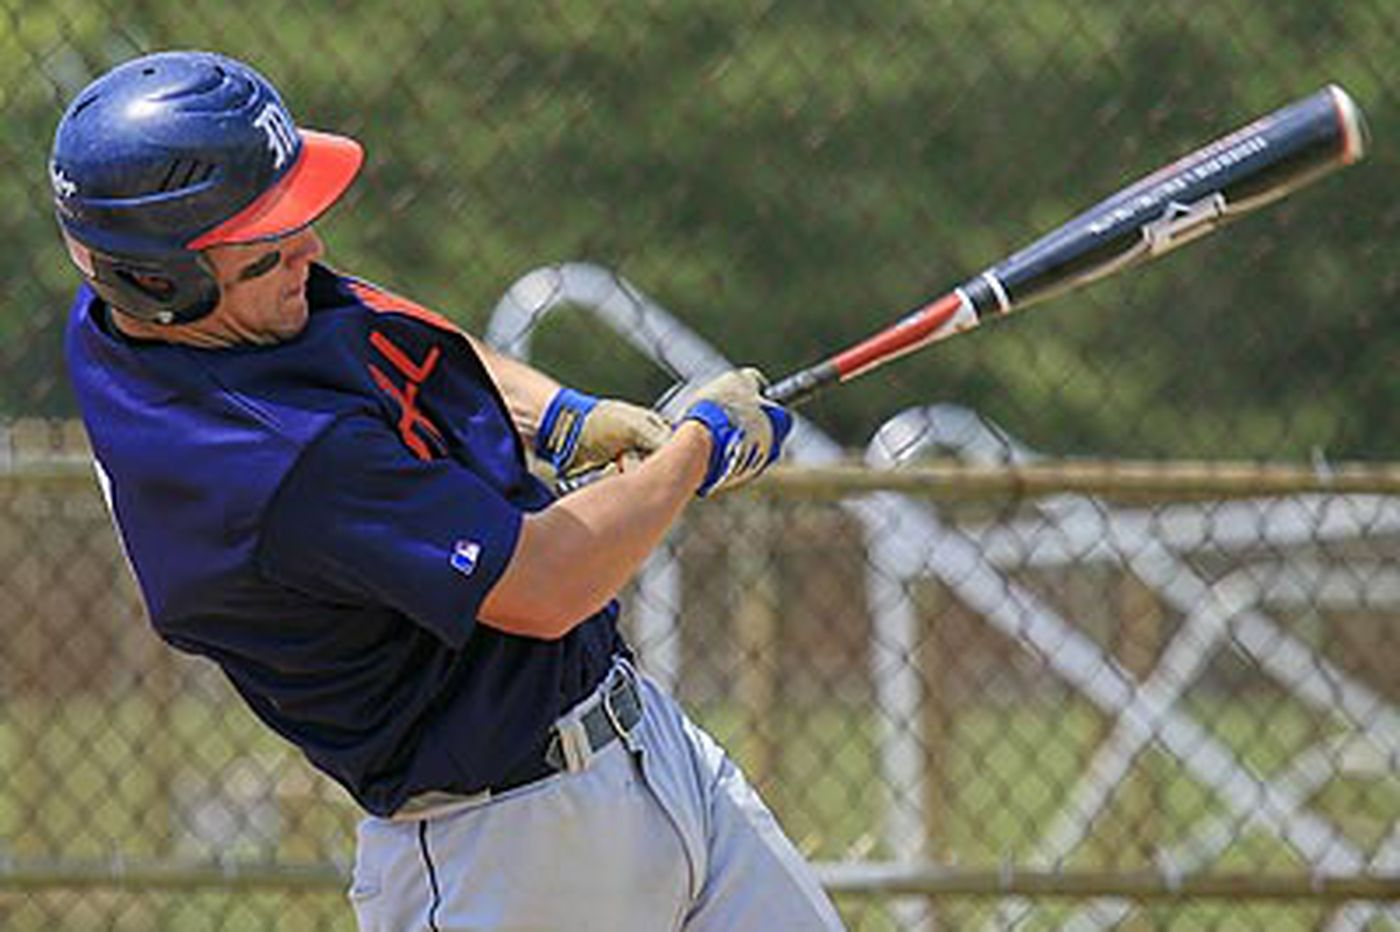 Millville's Trout is S.J. baseball player of the year